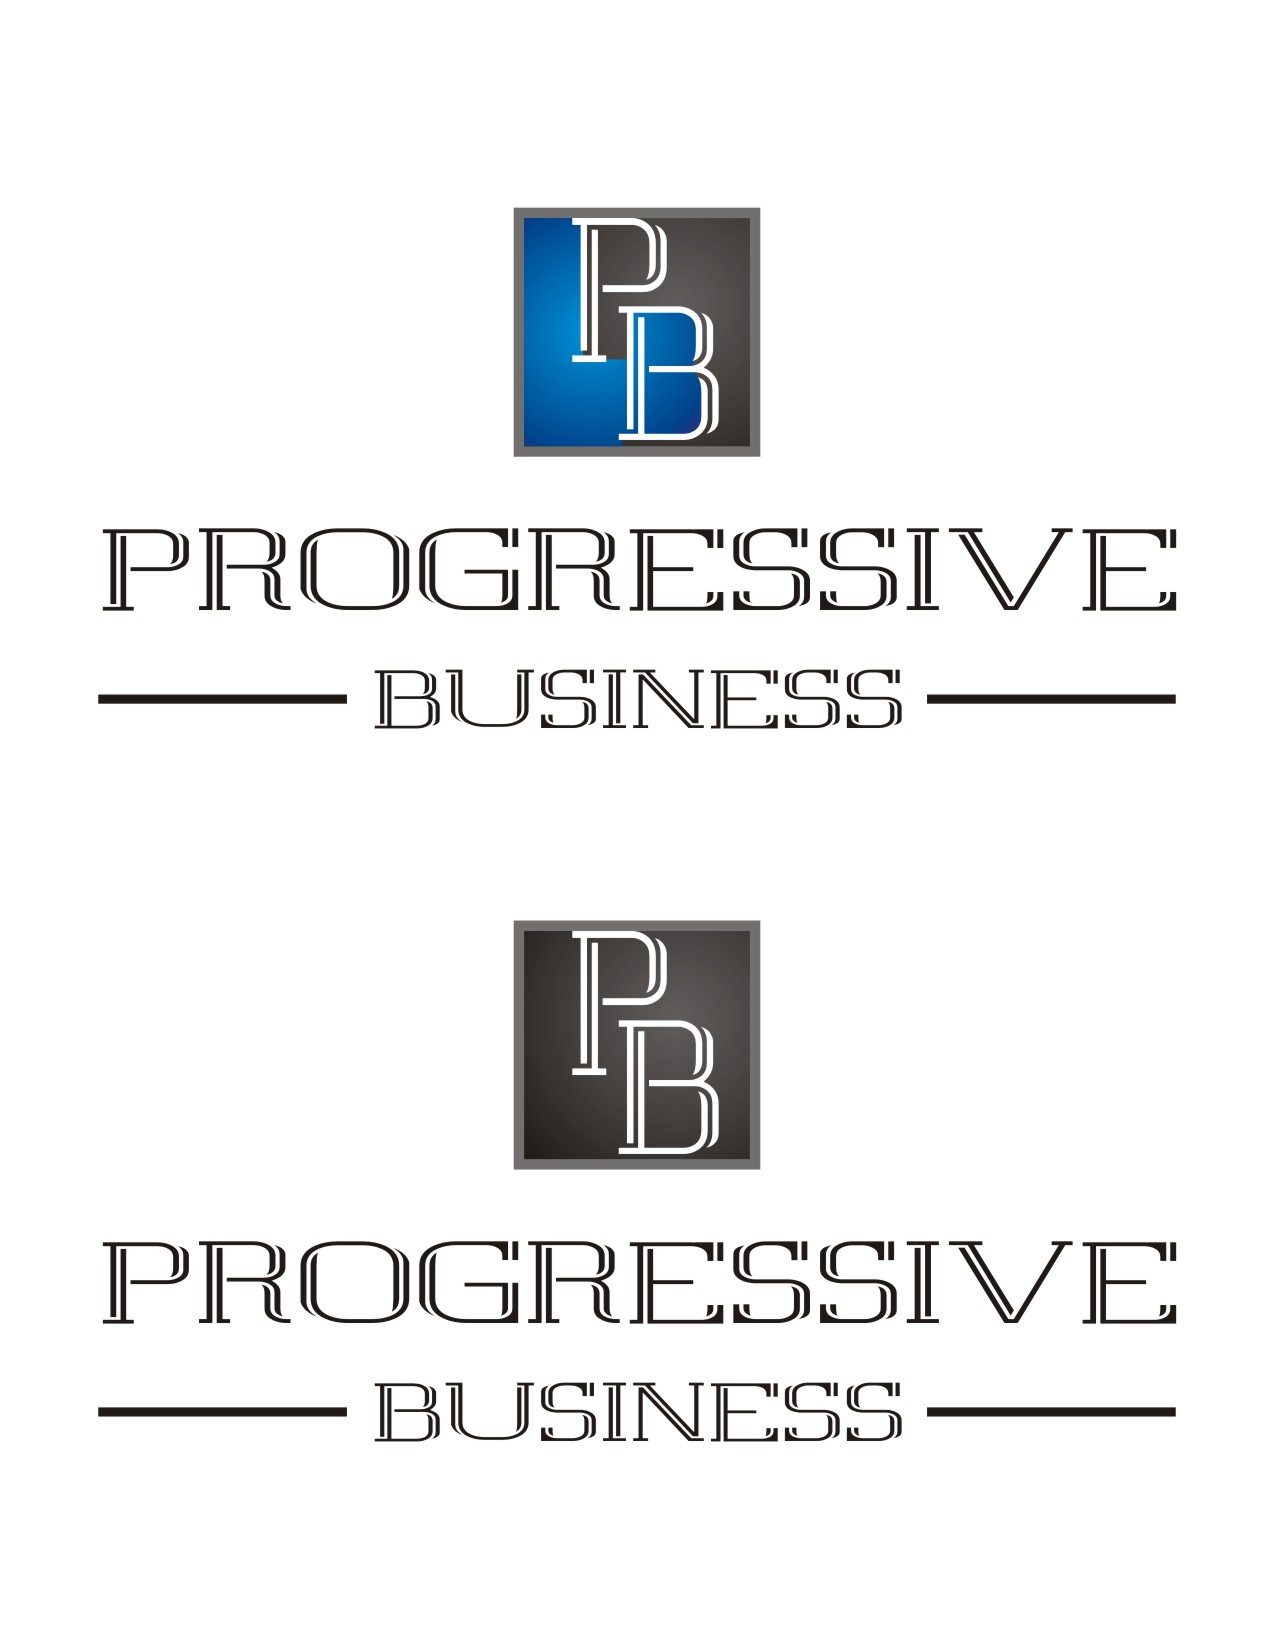 Logo Design by Spider Graphics - Entry No. 184 in the Logo Design Contest Captivating Logo Design for Progressive Business.